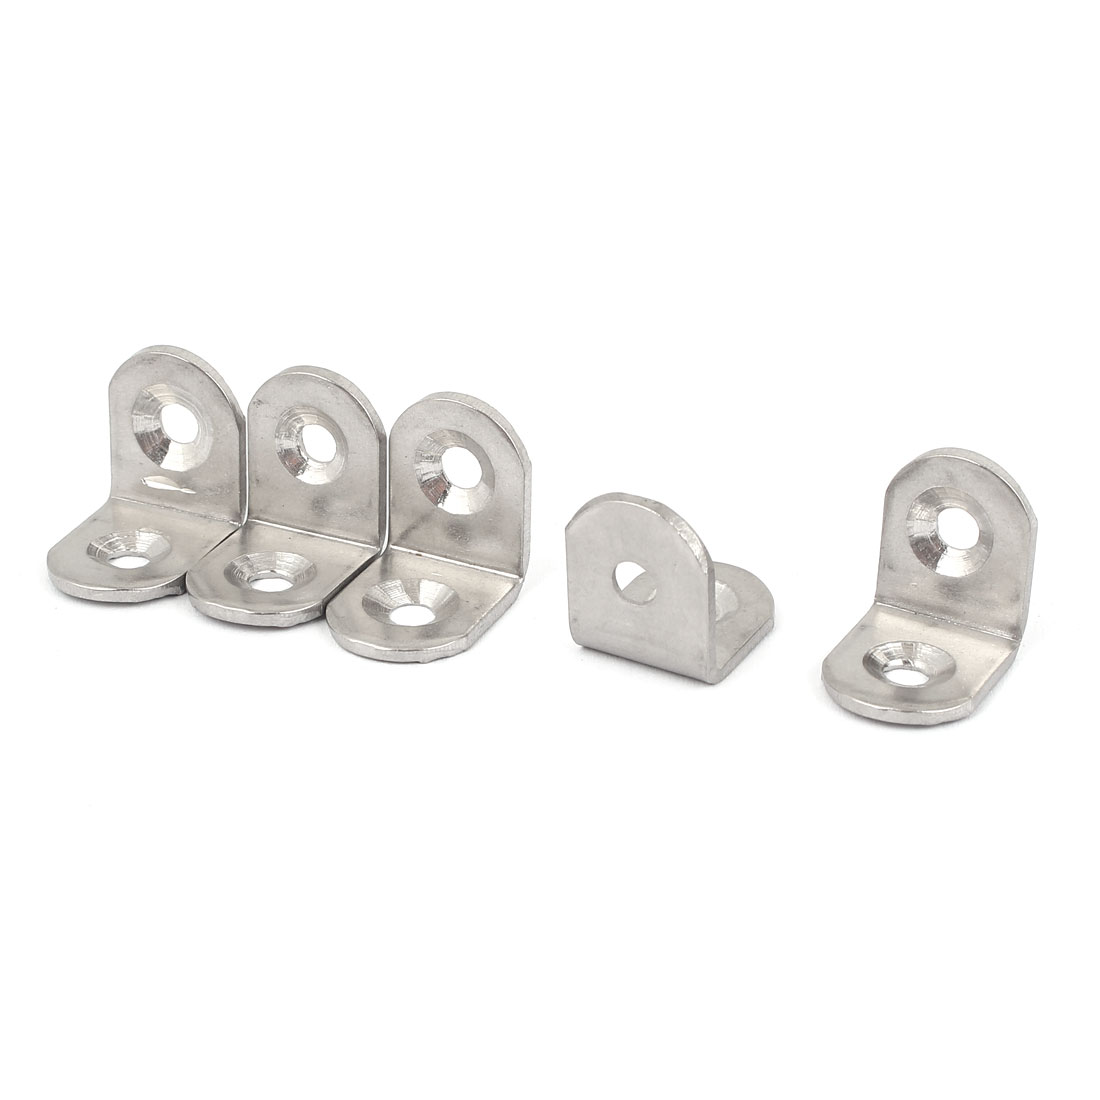 20mm x 20mm Stainless Steel L Shape Corner Brace Joint Right Angle Bracket 5pcs